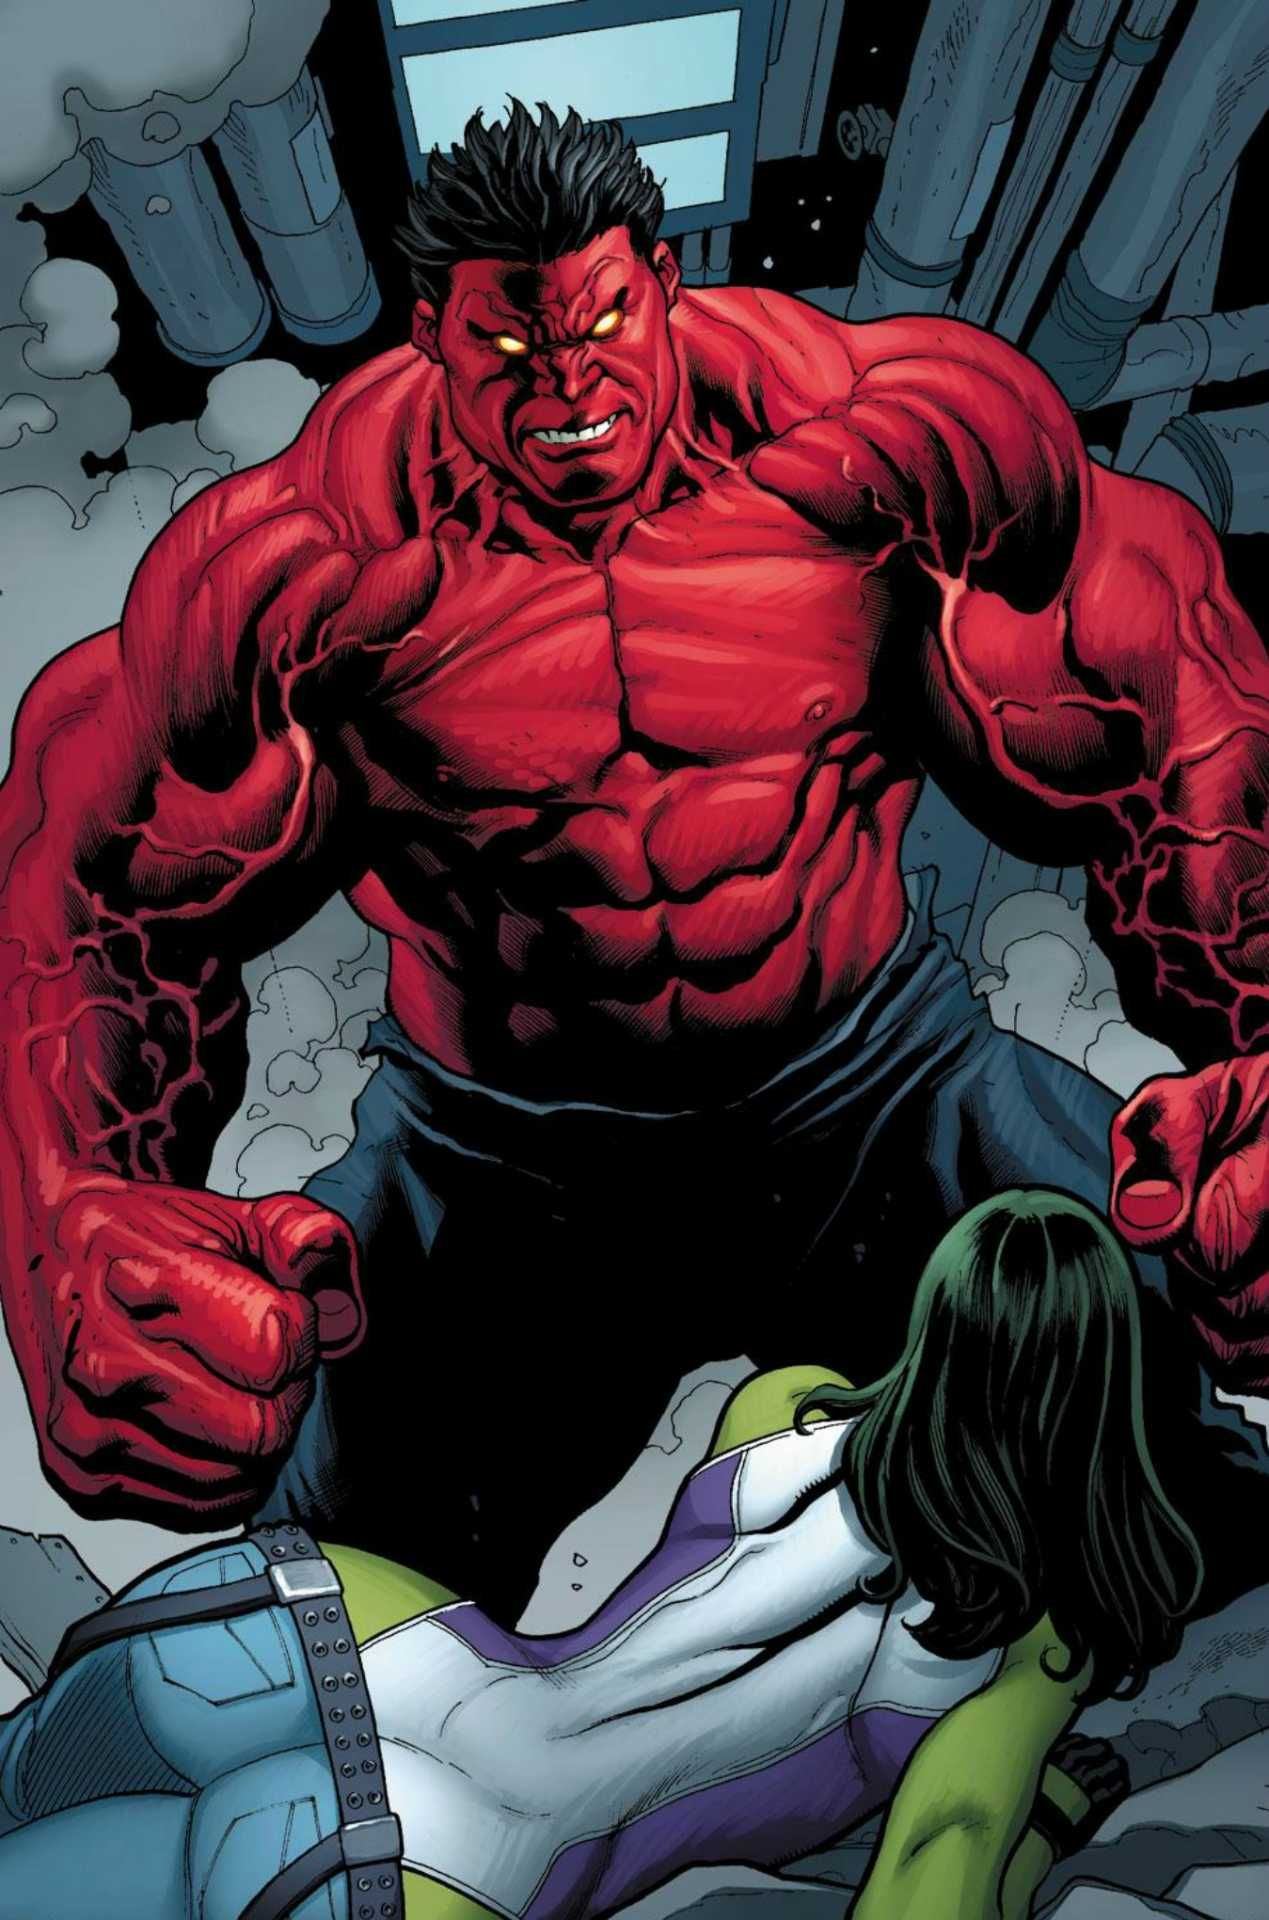 #Red #Hulk #Fan #Art. (Rulk Vs She Hulk) By: Frank Cho. (THE * 5 * STÅR * ÅWARD * OF: * AW YEAH, IT'S MAJOR ÅWESOMENESS!!!™) ÅÅÅ+